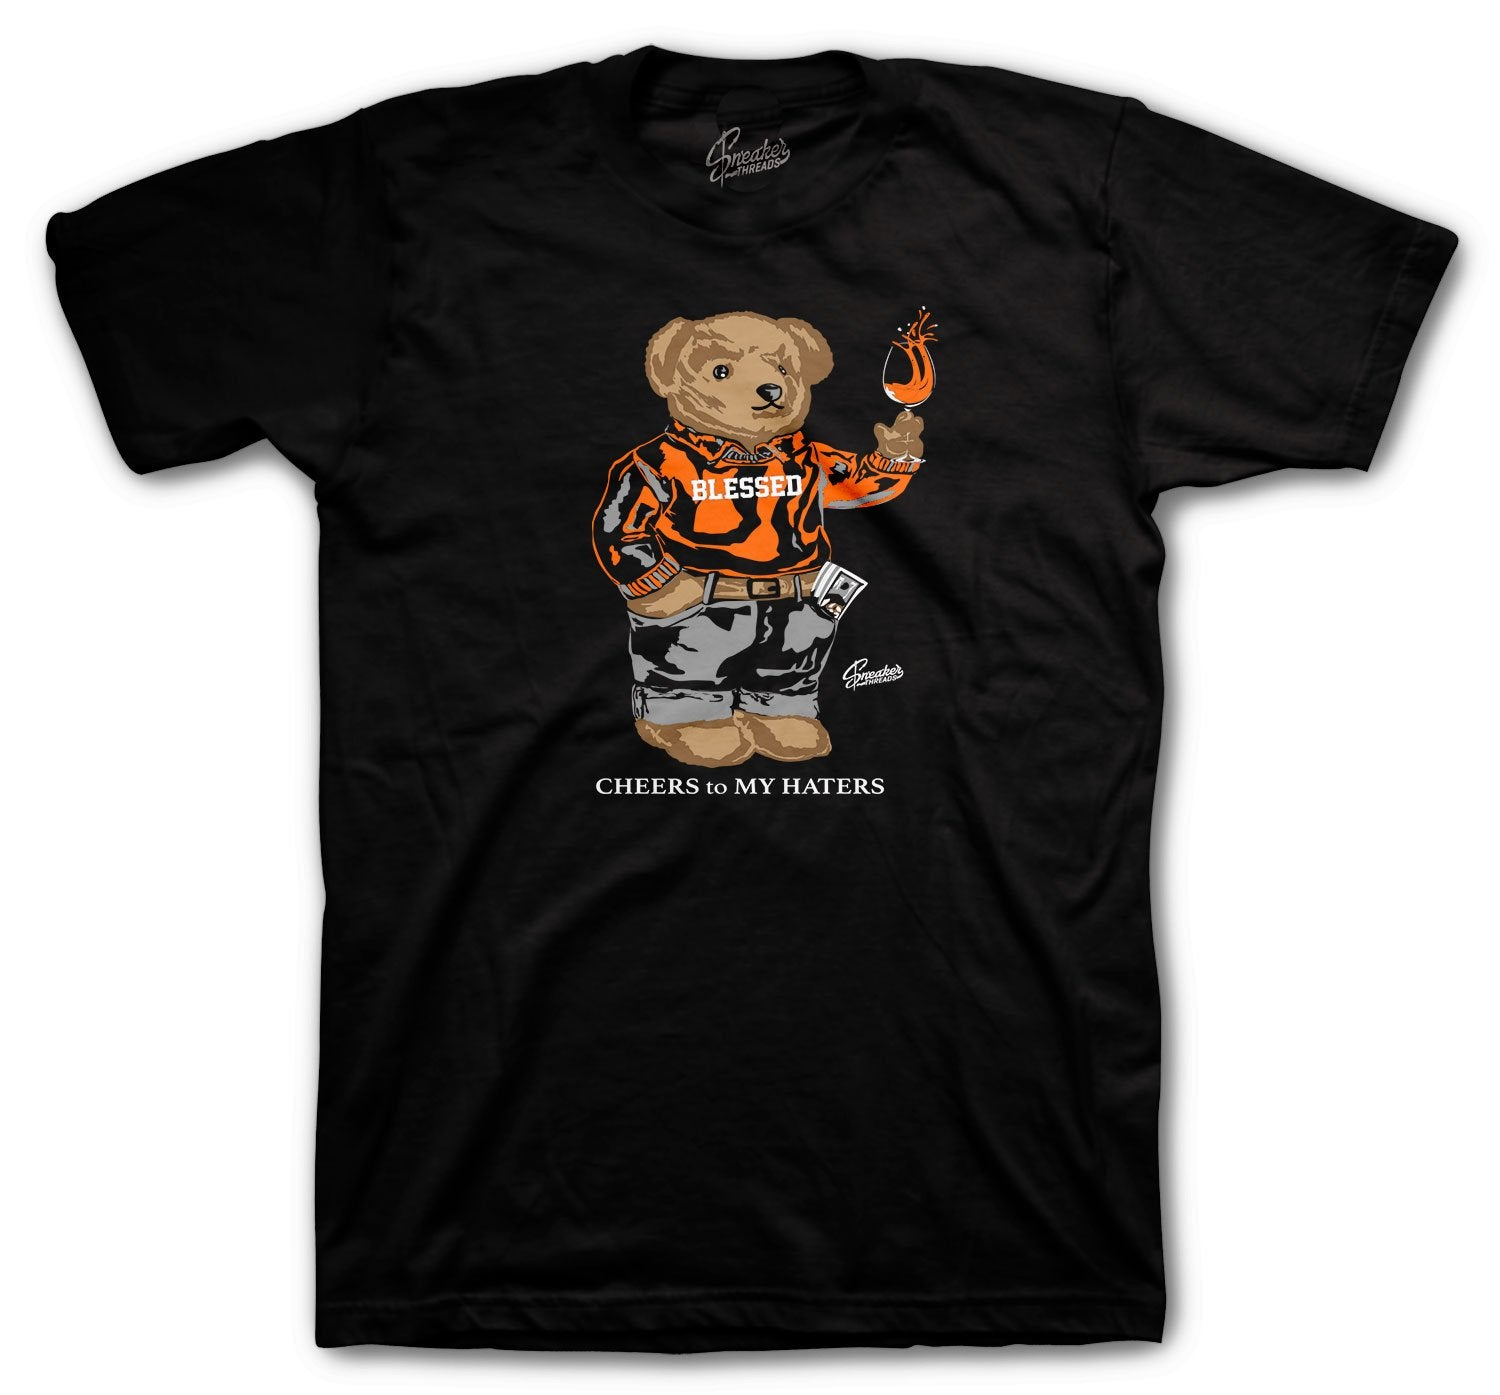 Cute Bear shirt collection to match best with Jordan Lebron 17's